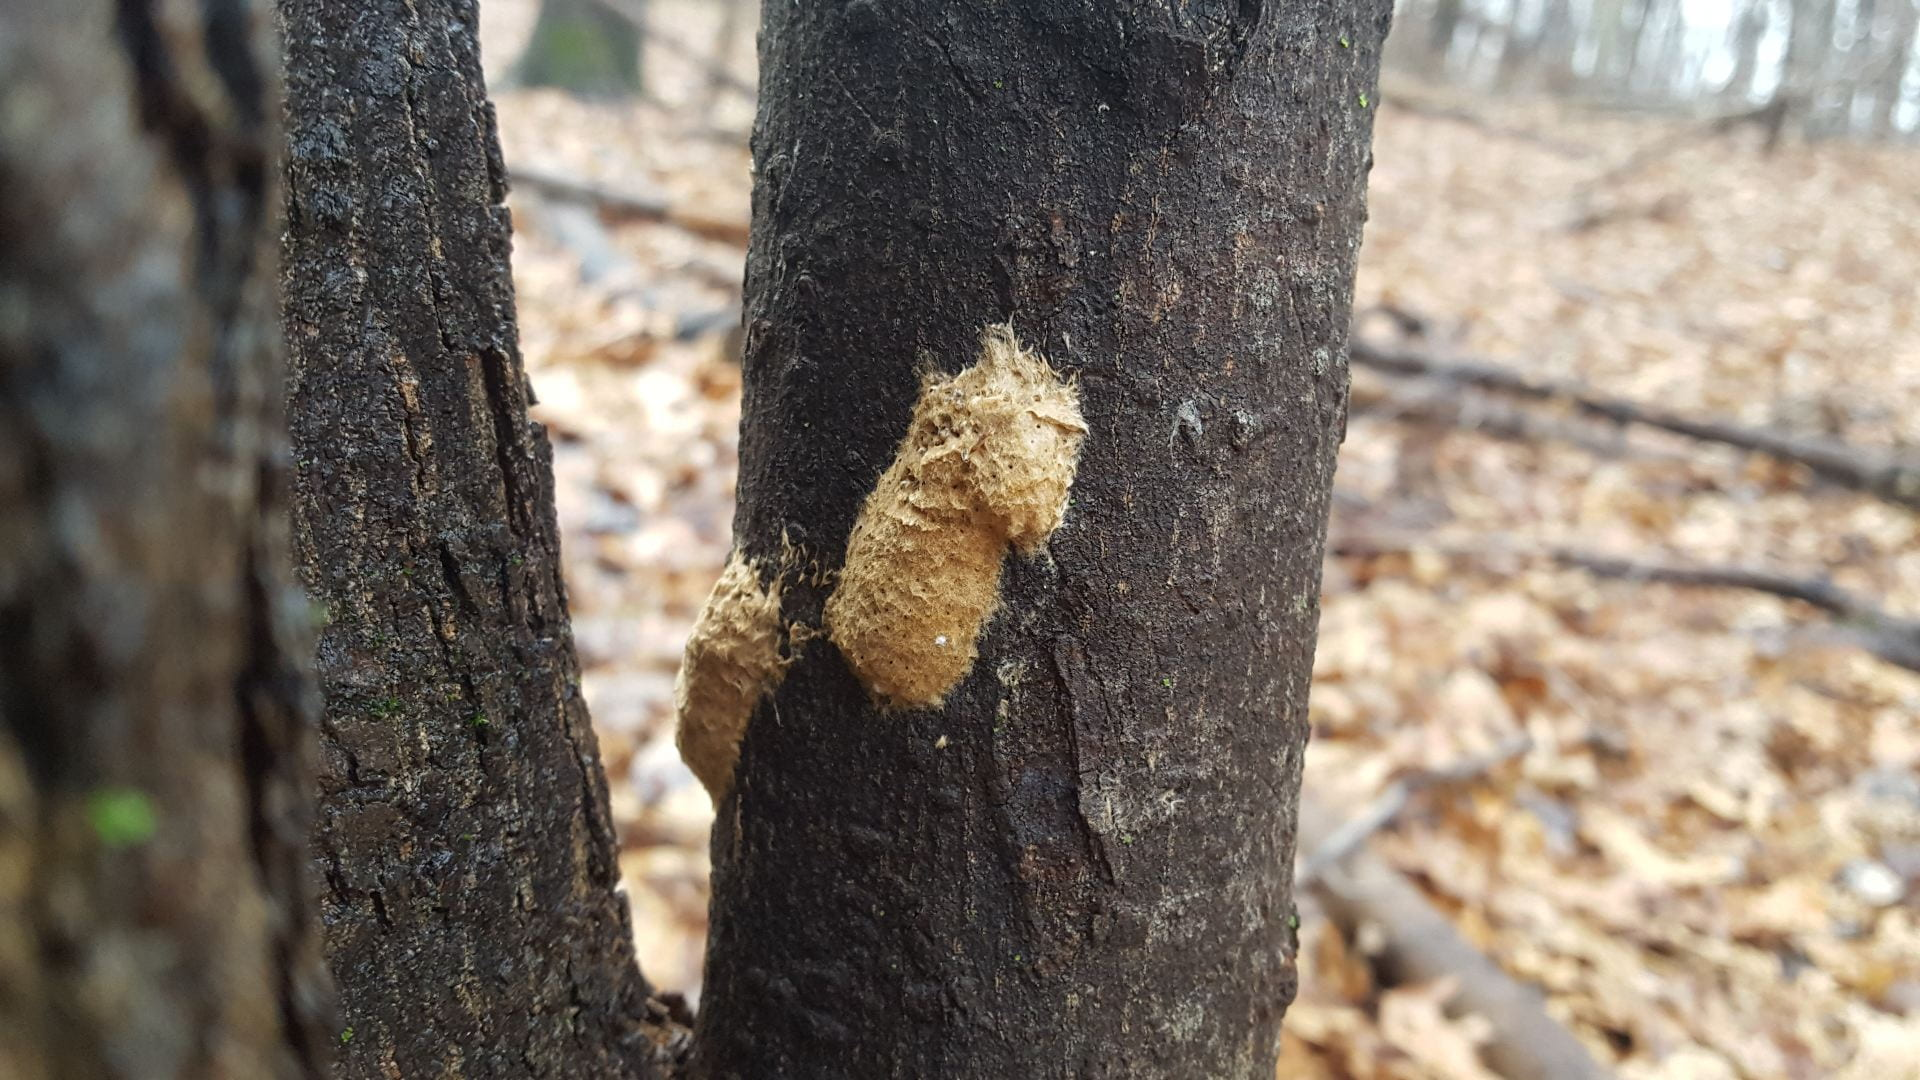 photo shows gypsy moth egg cases on tree bark